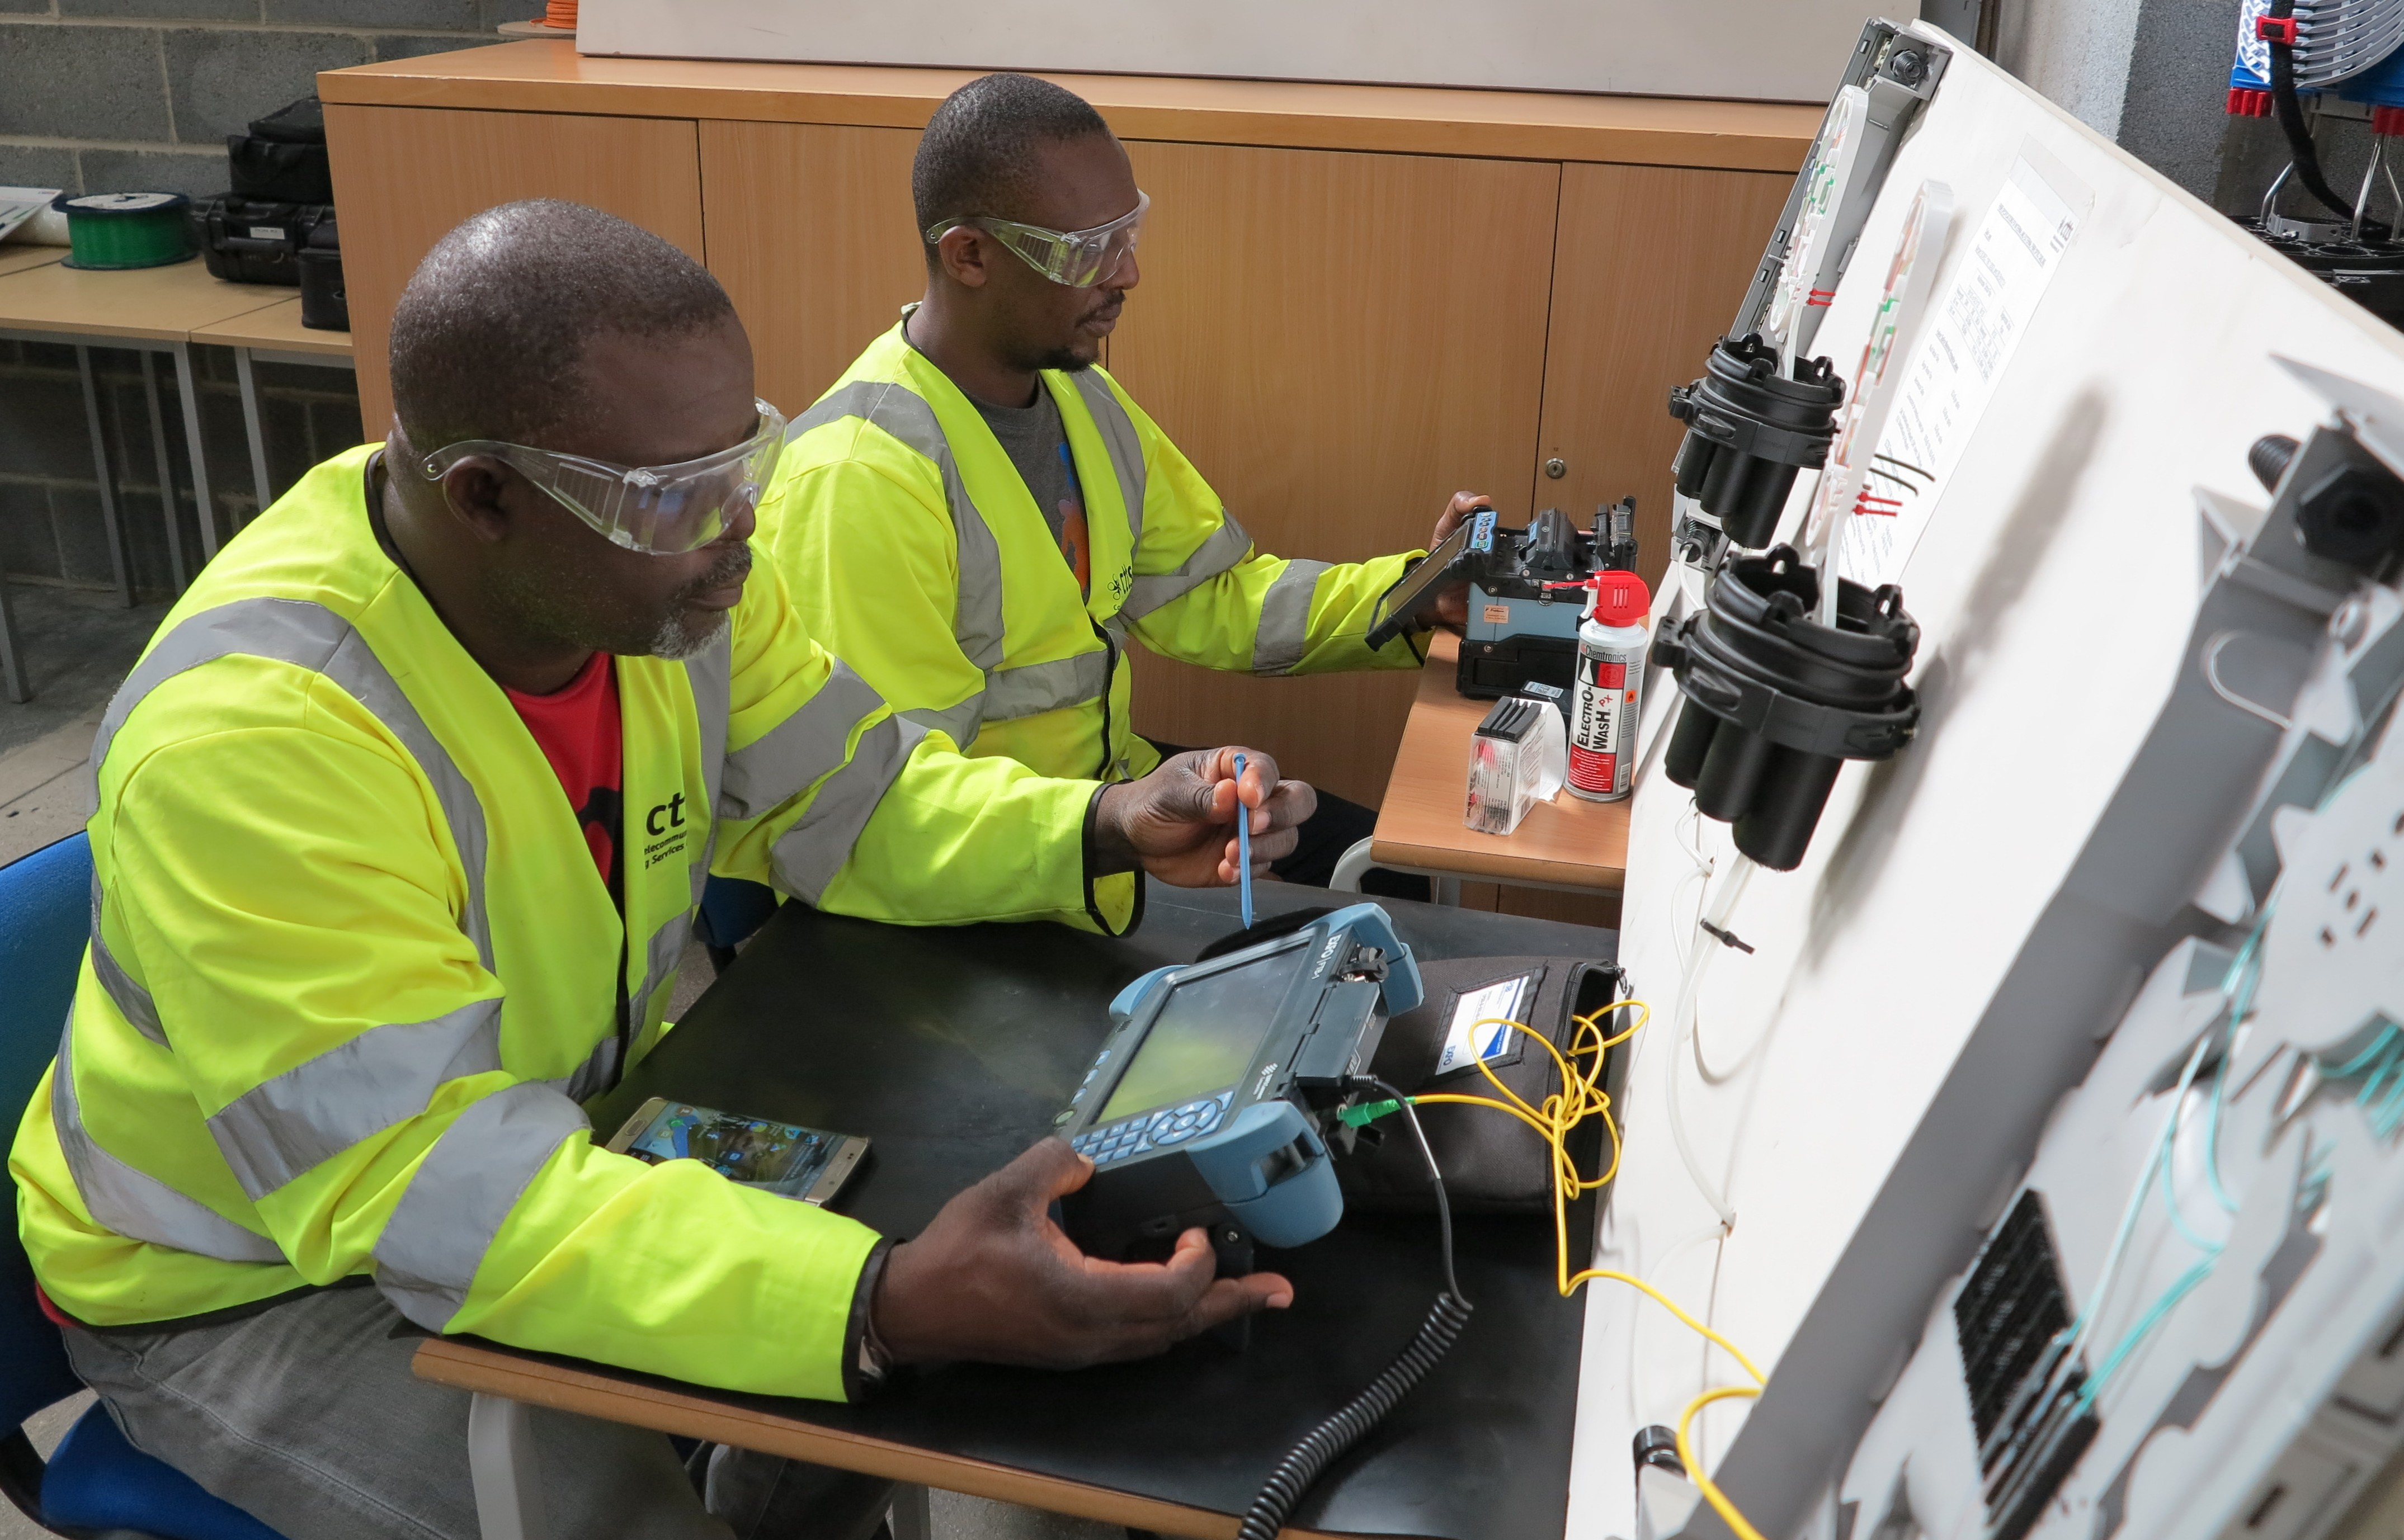 Technical Director Rafi Mohammed and engineer Fikiri Mhango get to grips with optical test and measurement and fusion splicing technics leading to certified qualifications.